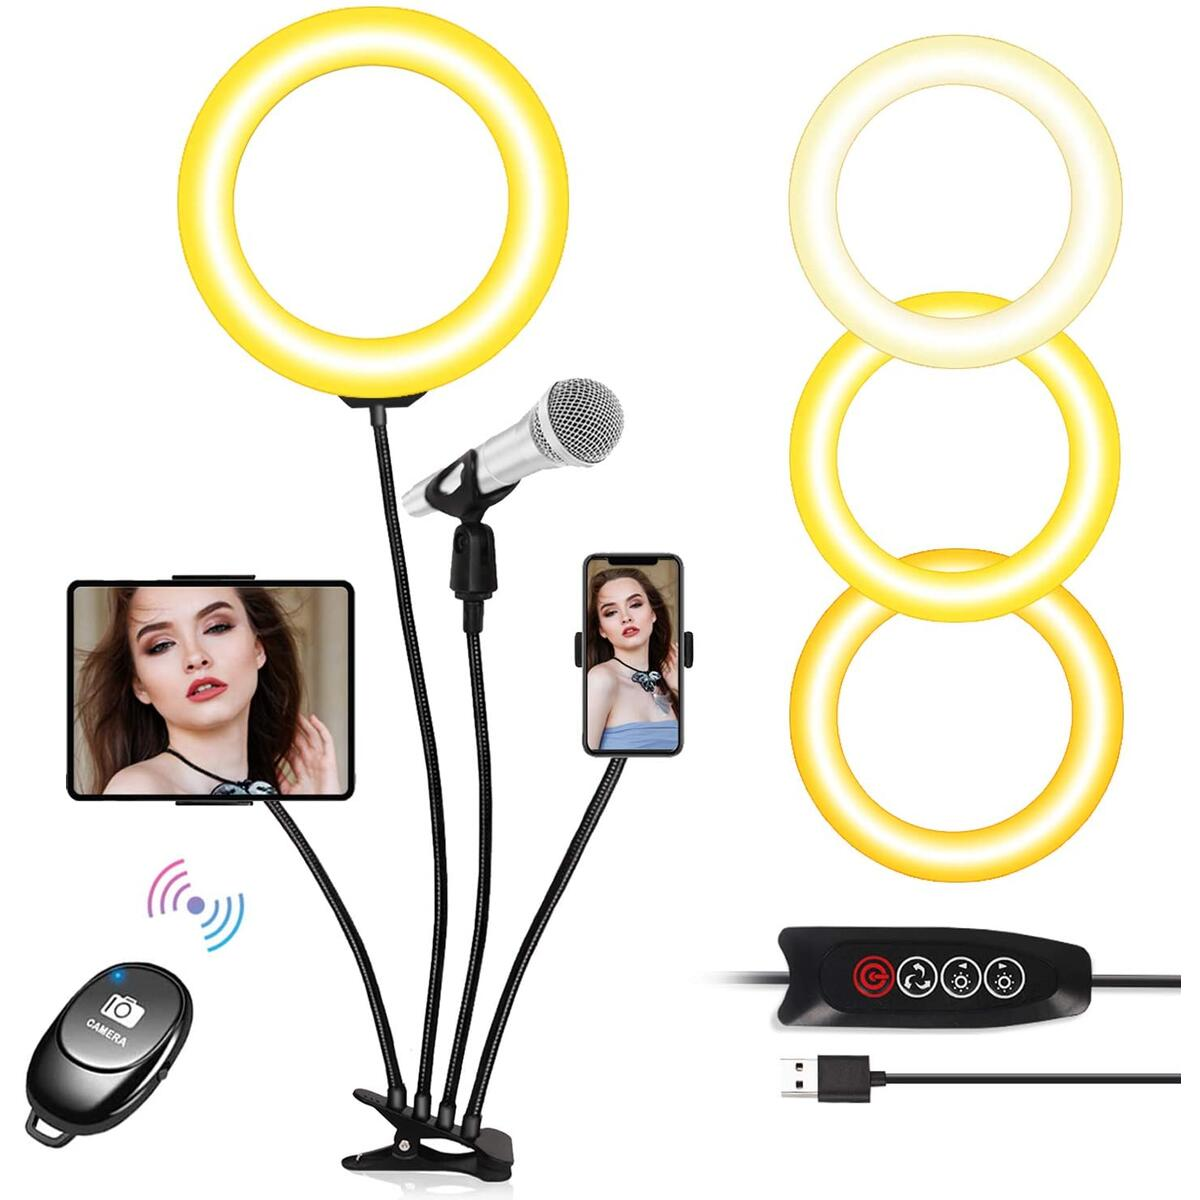 8'' Selfie Ring Light with Cellphone Holder Stand Remote Control, Dimmable Filming Selfire Ring Light for Photography/Video/Tiktok/Live-Stream/YouTube/iPhone Android with Tablet/Mic Holder by Sunrich